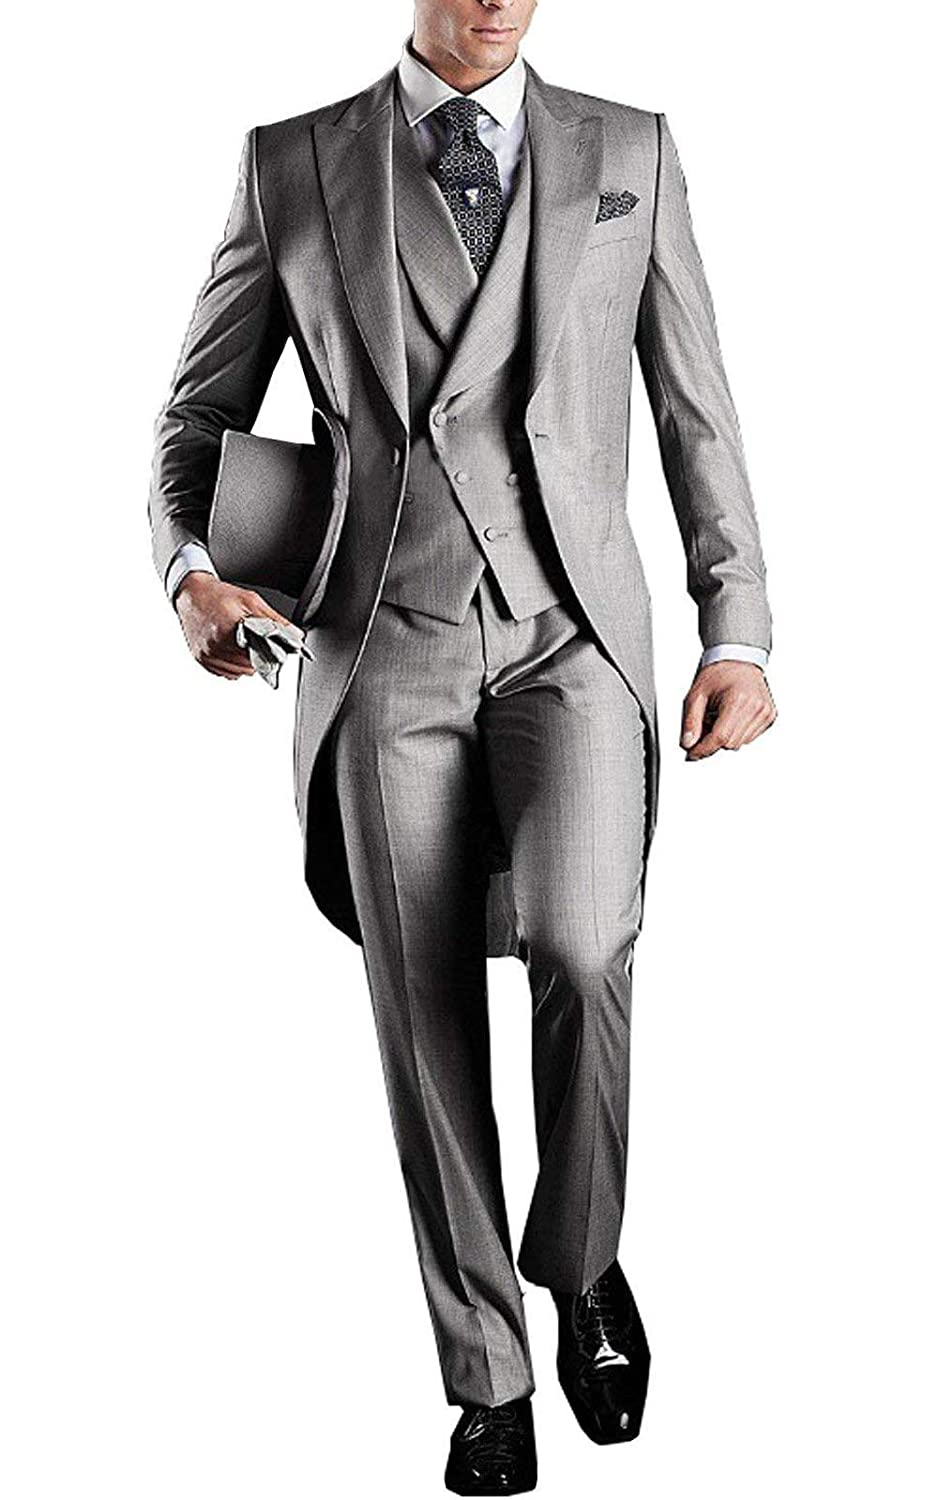 Retro Clothing for Men | Vintage Men's Fashion YBang Mens Classic 3 Pieces Tux Suit One Button Regular Fit Long Tail Tuxedos $84.90 AT vintagedancer.com